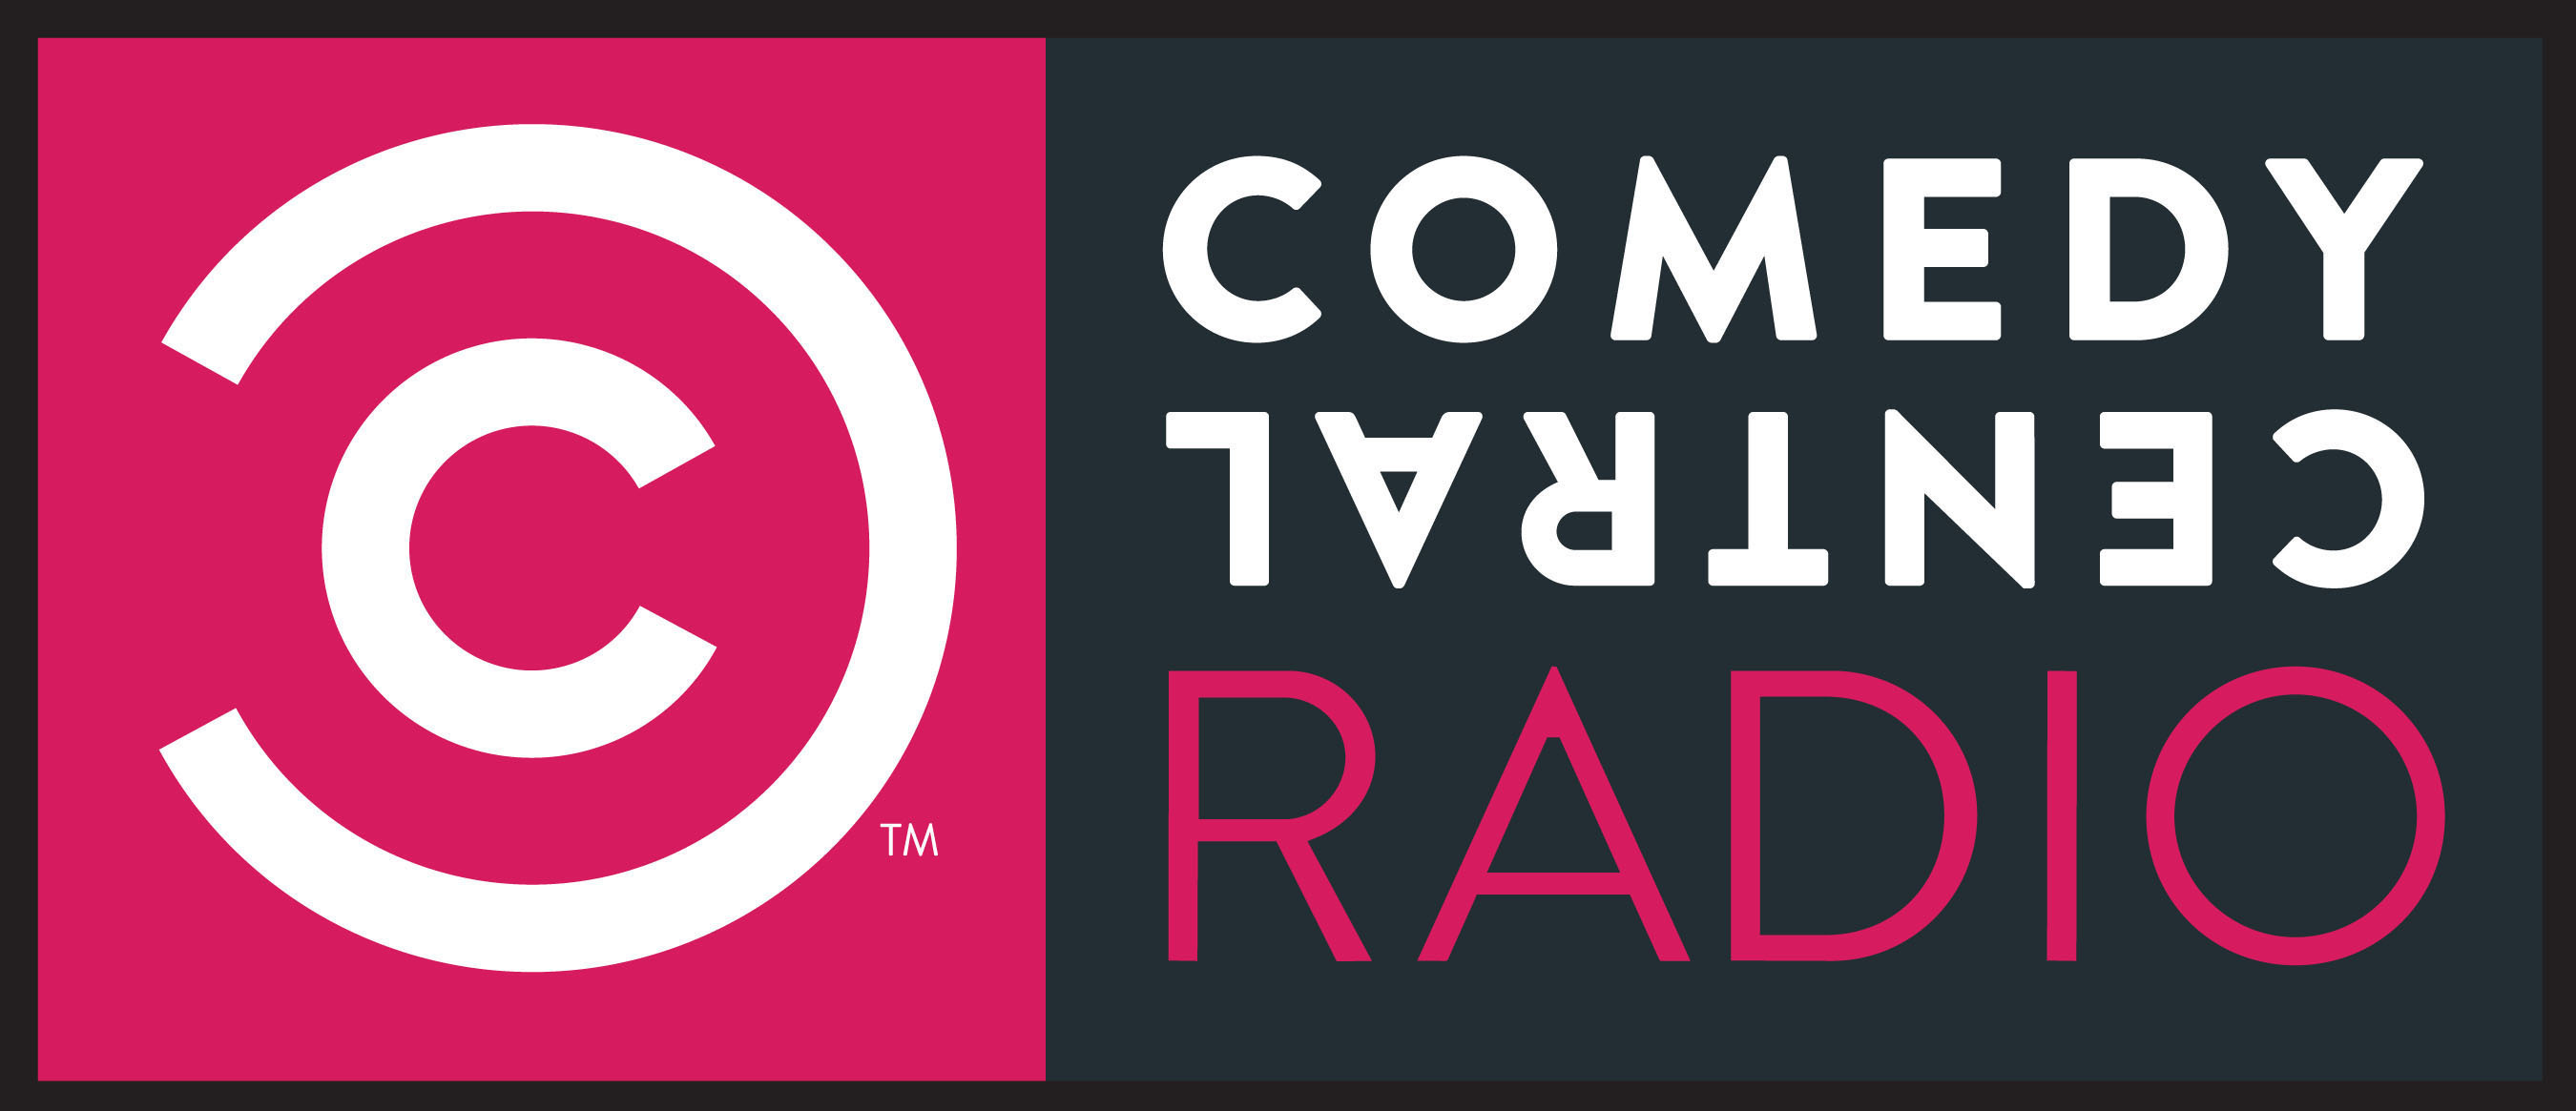 COMEDY CENTRAL Radio logo.  (PRNewsFoto/COMEDY CENTRAL)